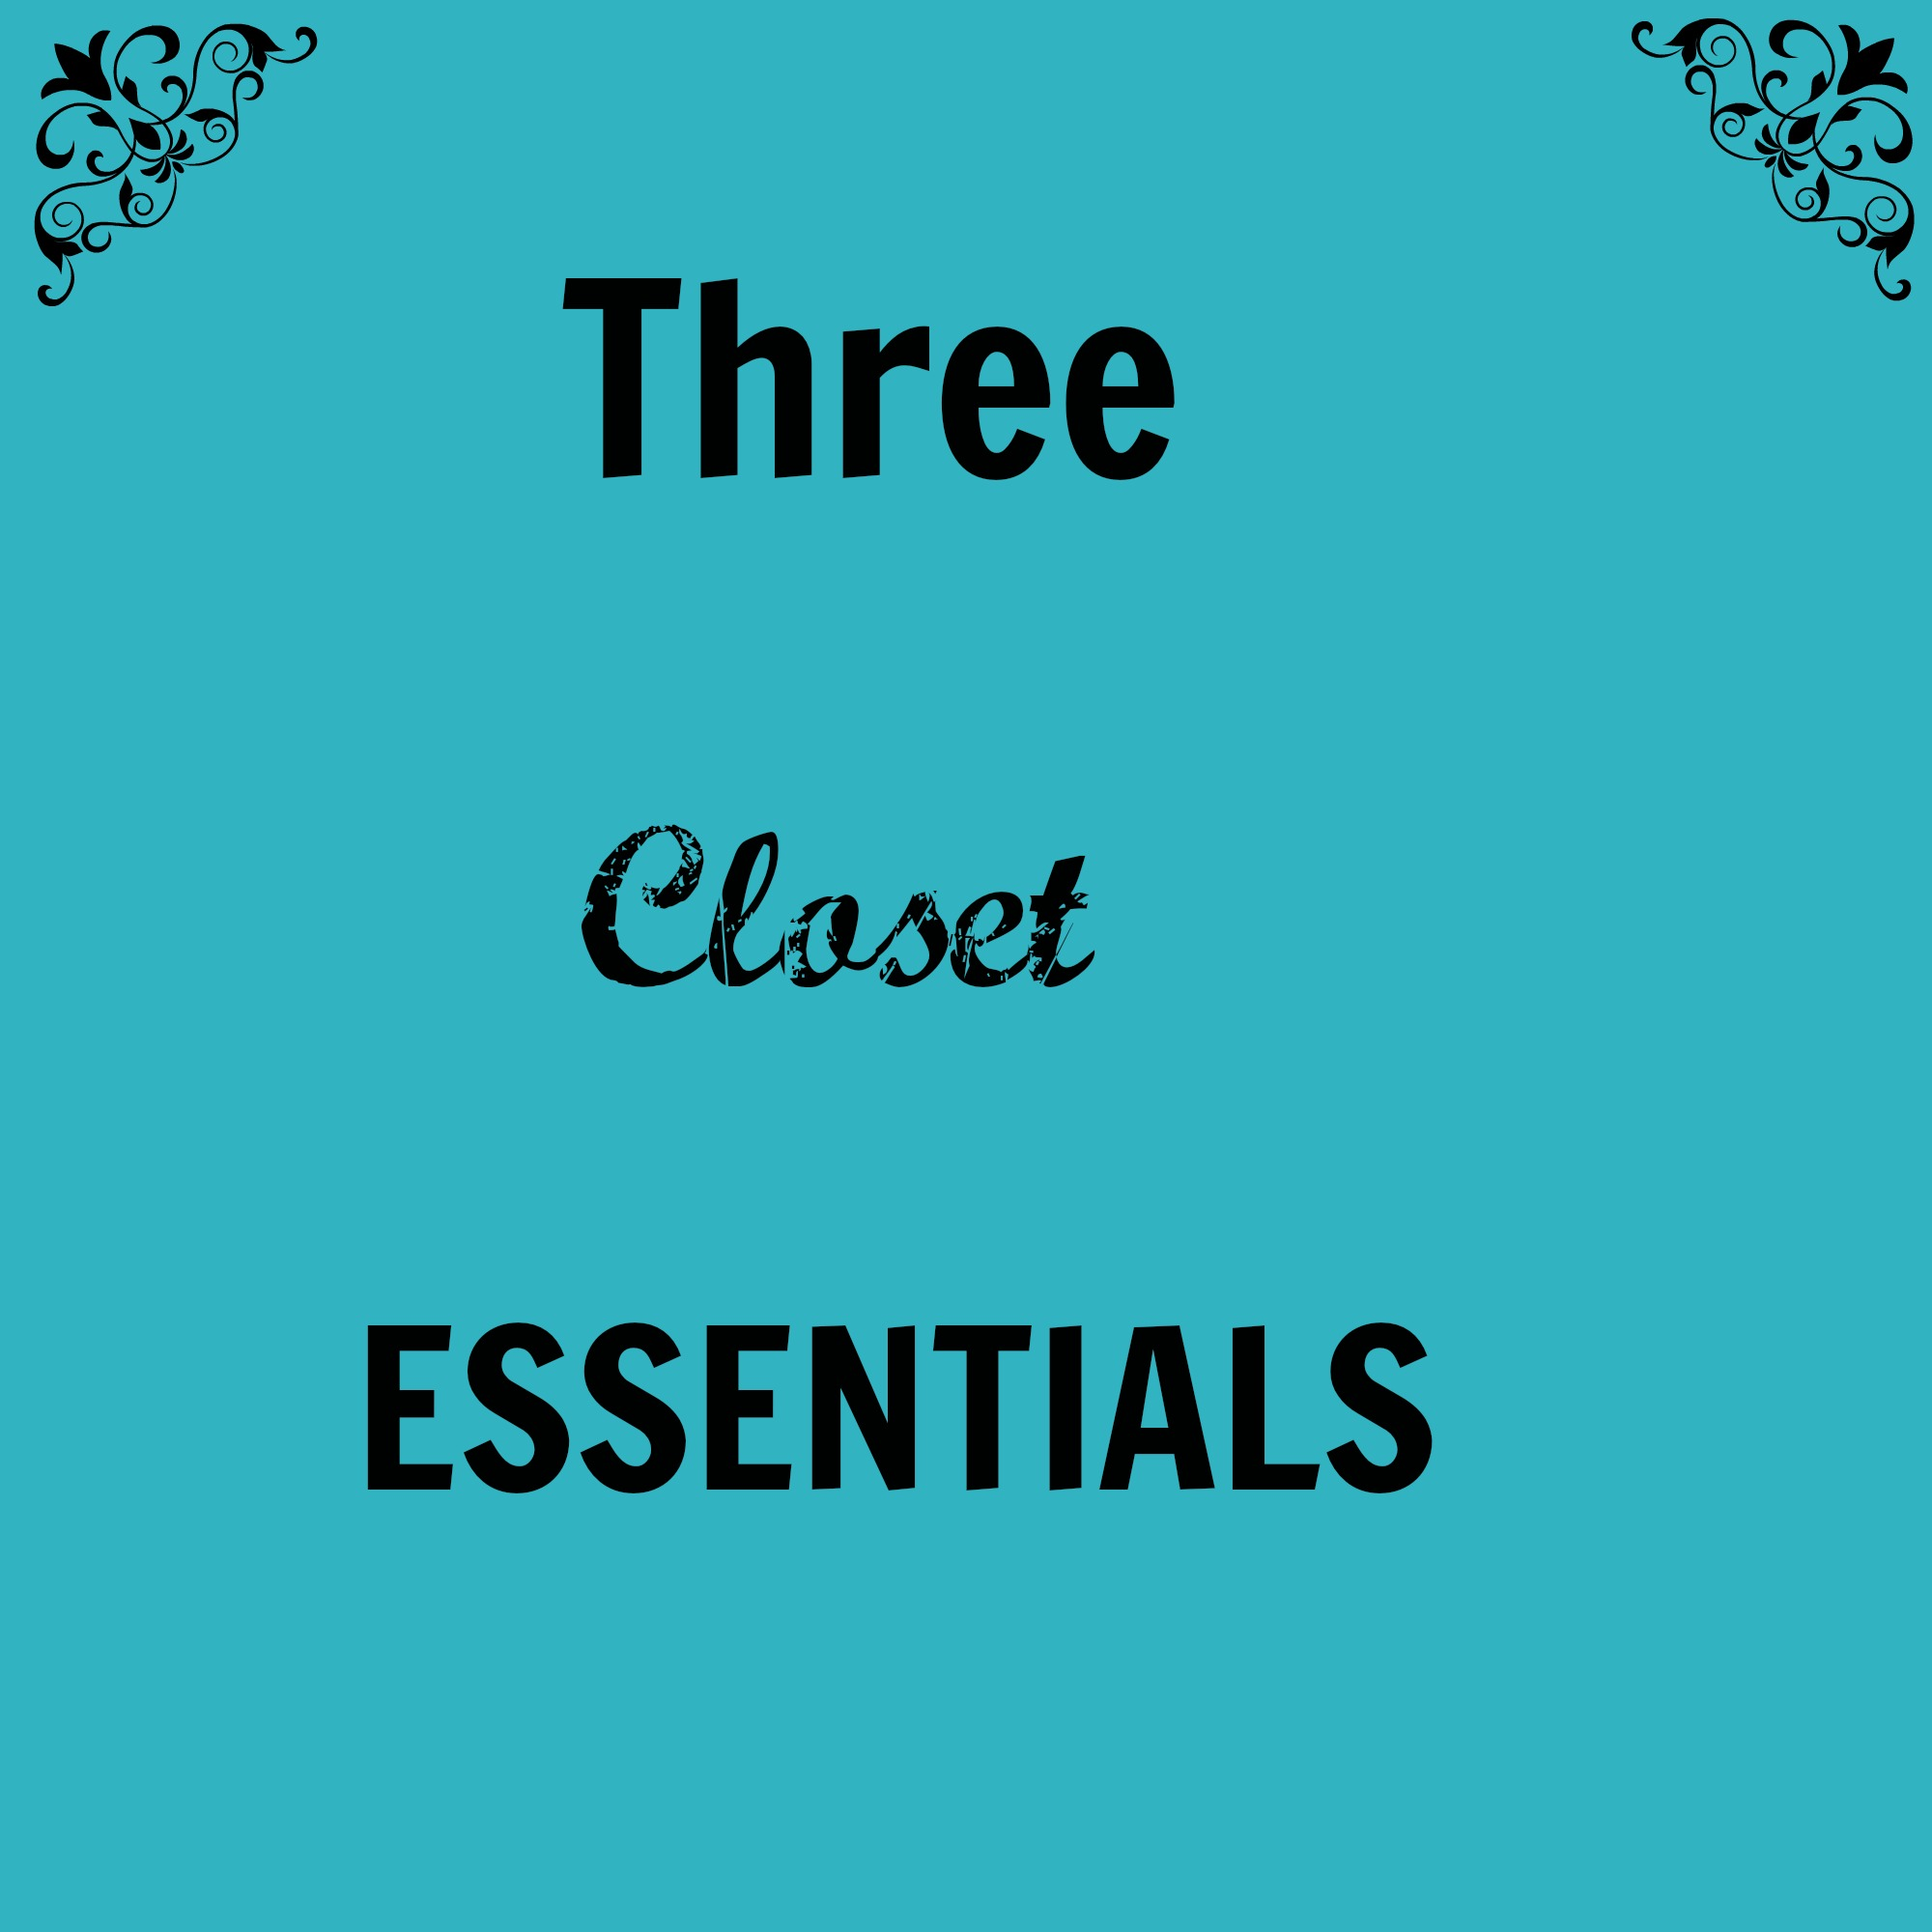 Closet essentials - Three Closet Essentials